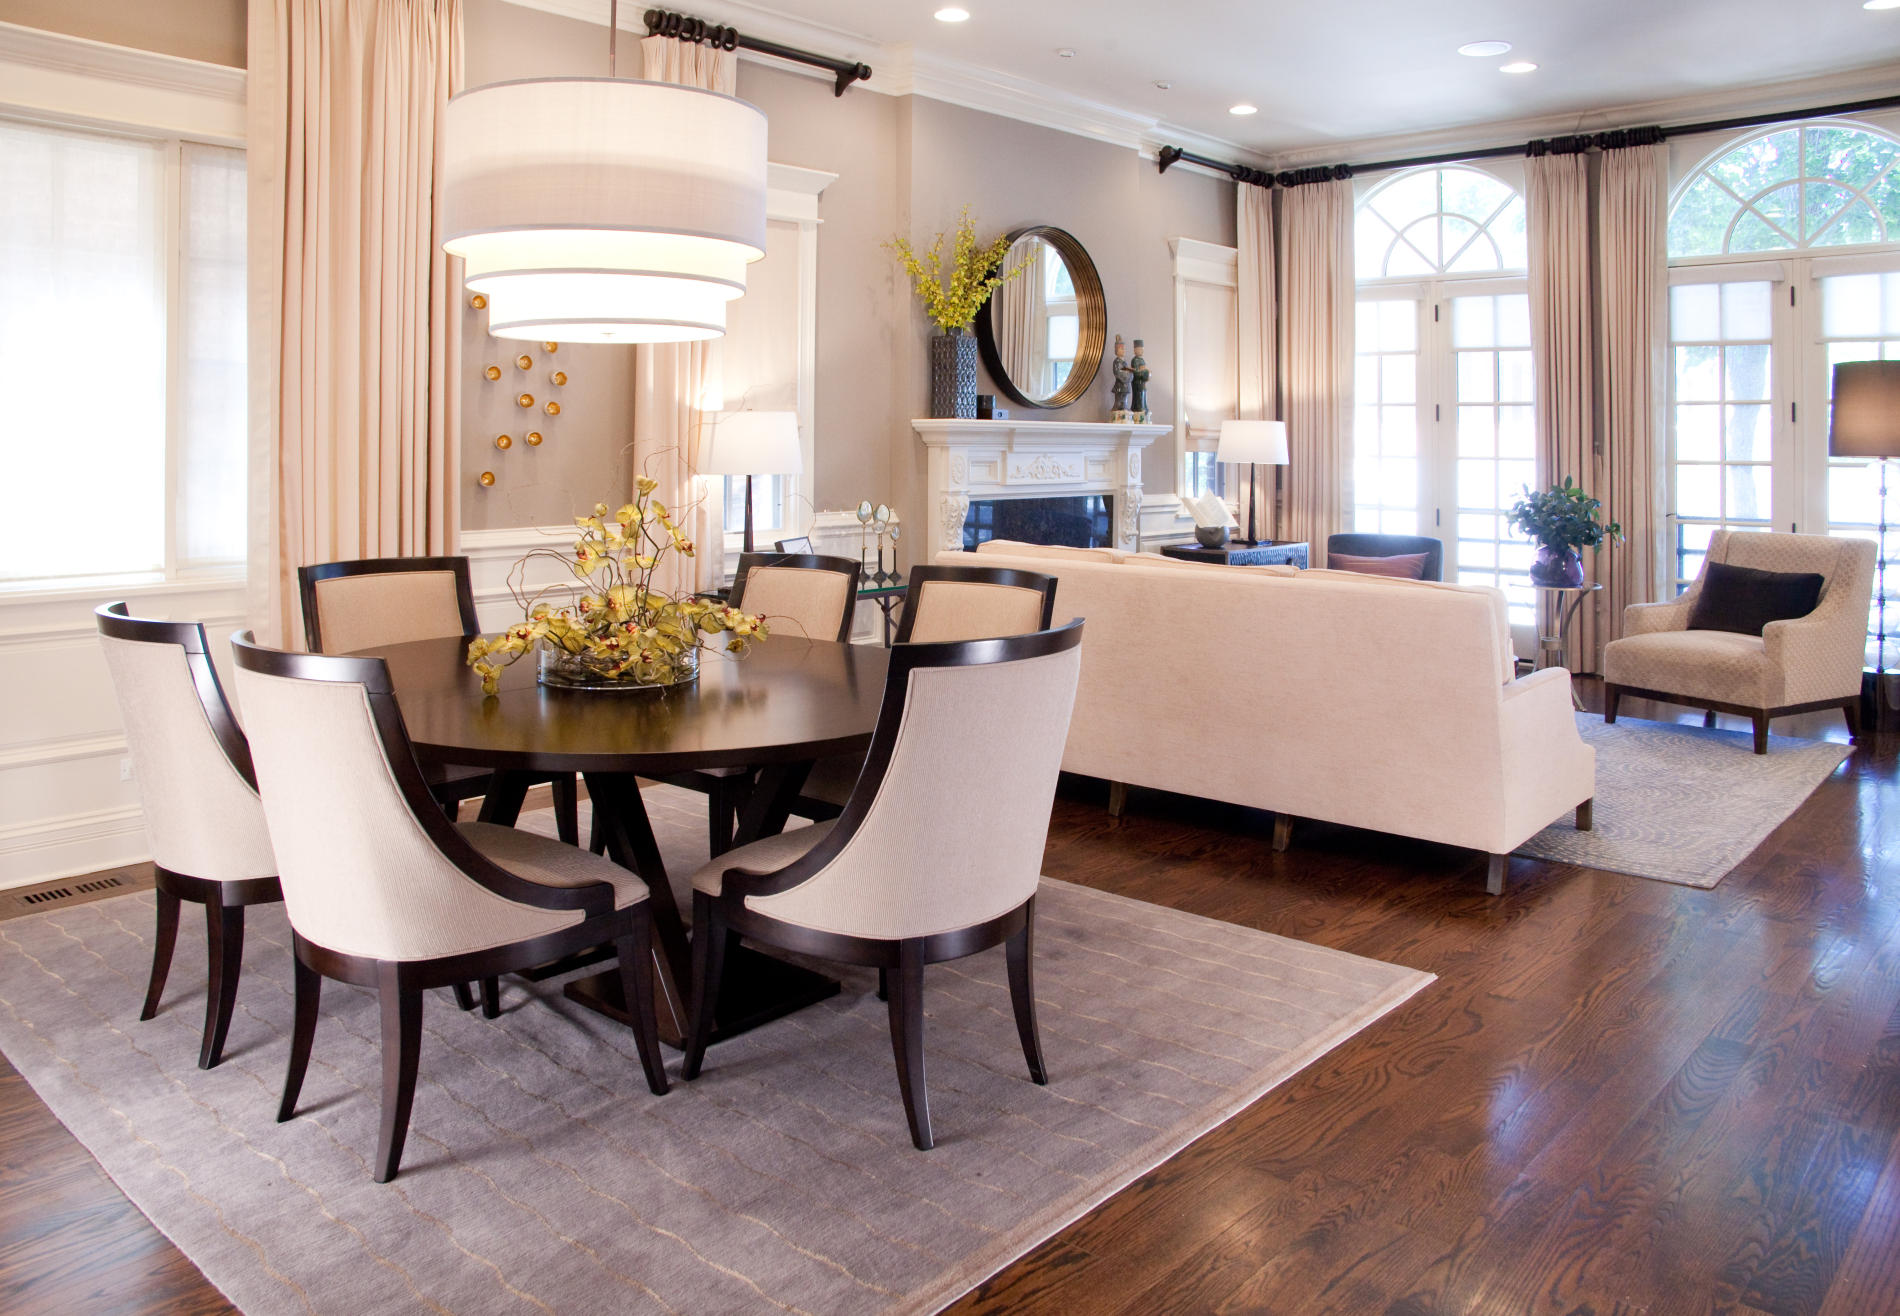 Best dining room sets for your home 26